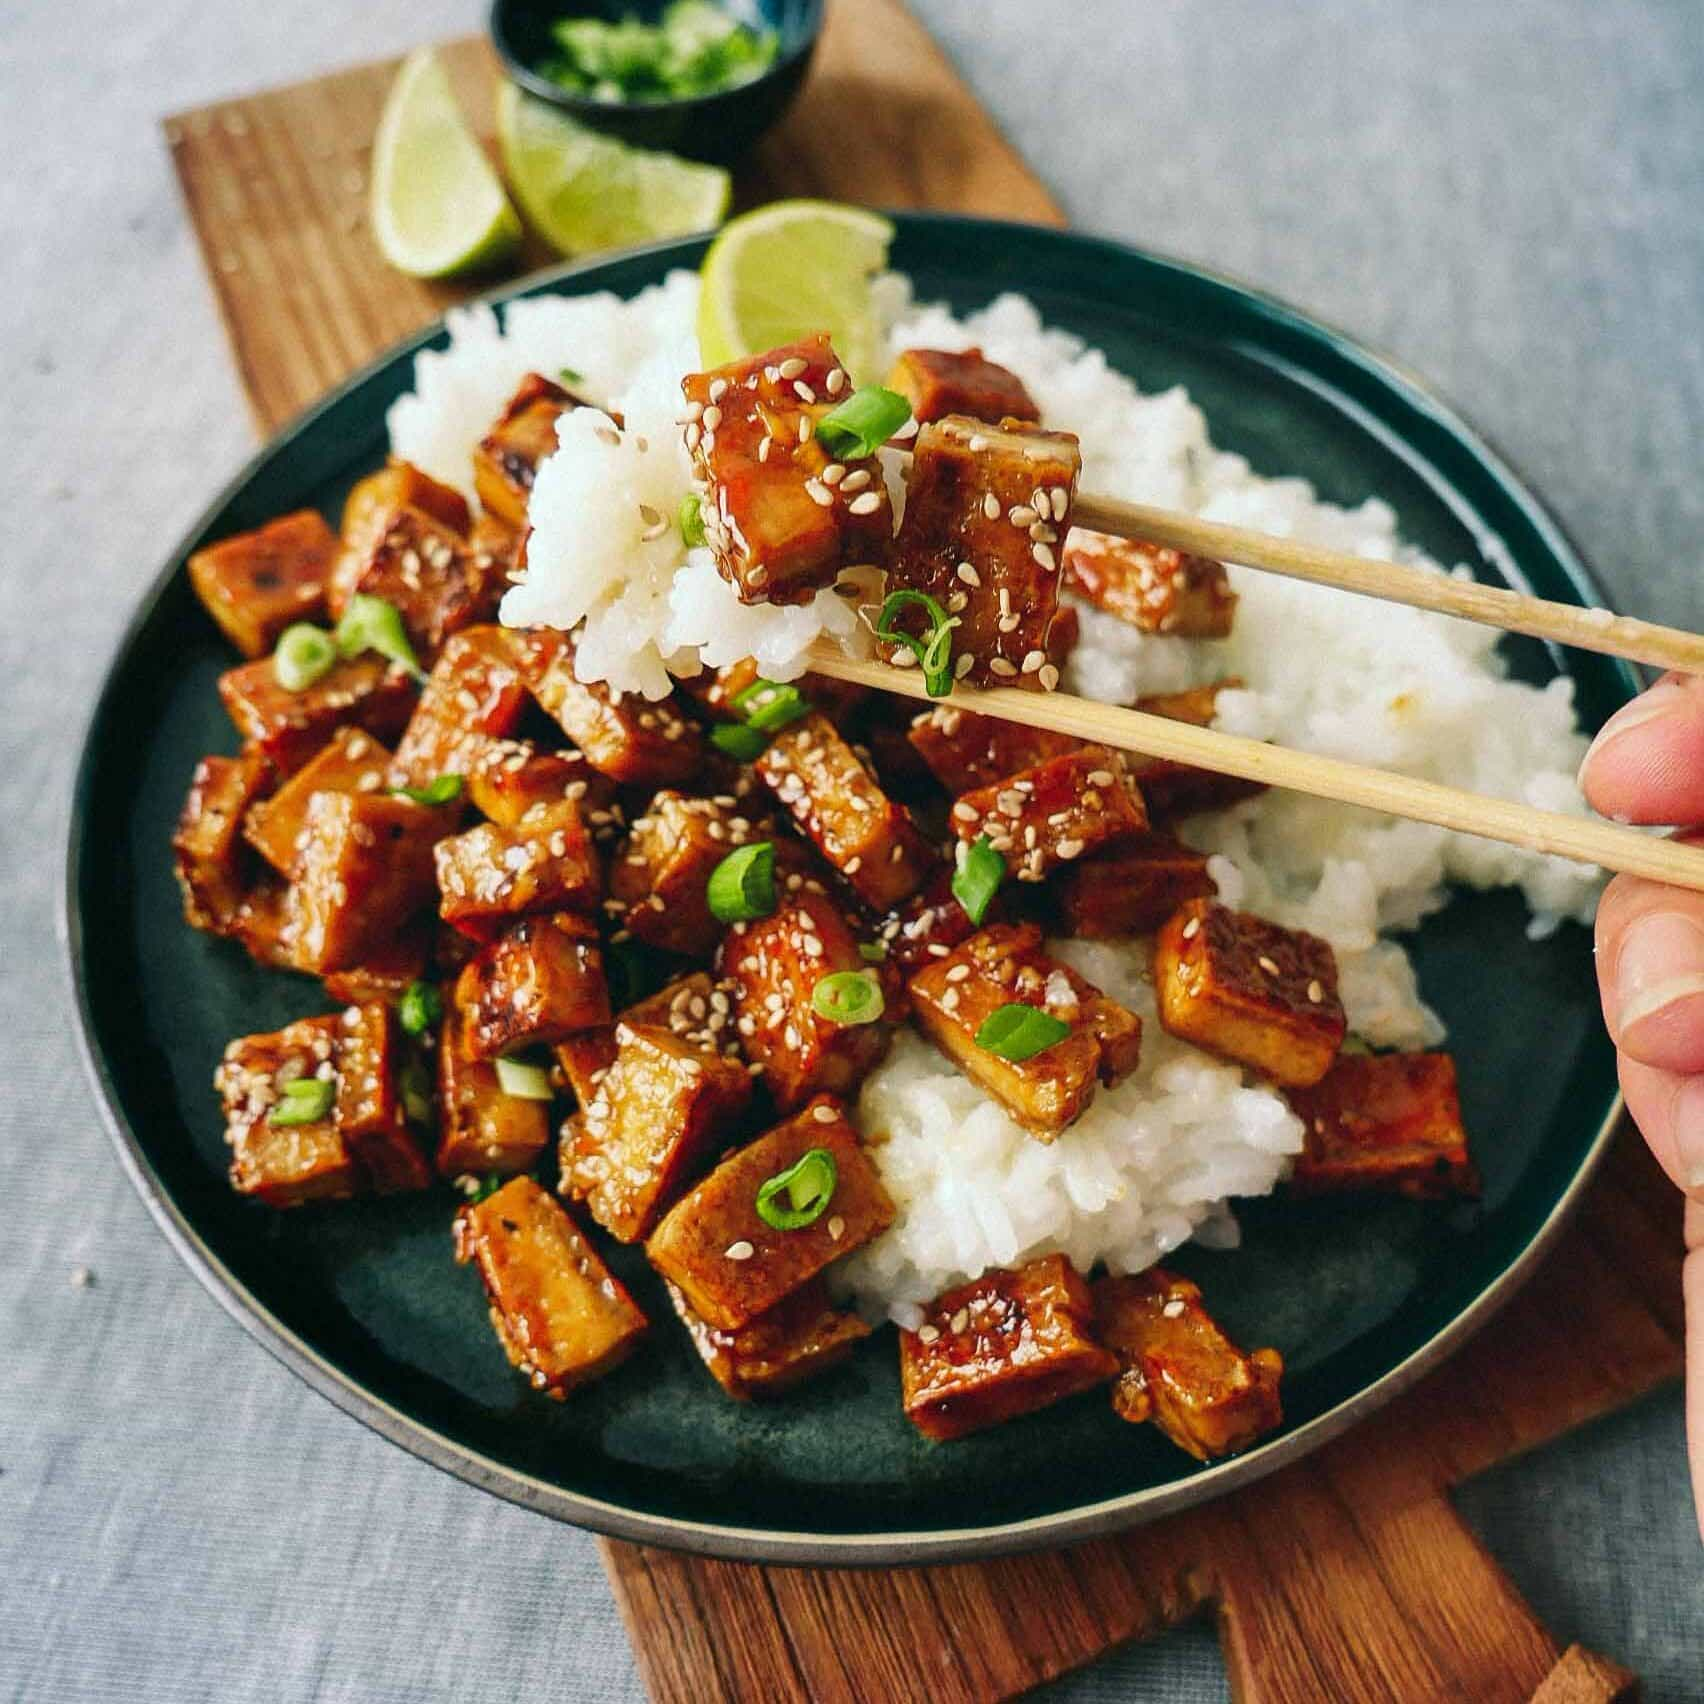 vegan recipes with fried tofu